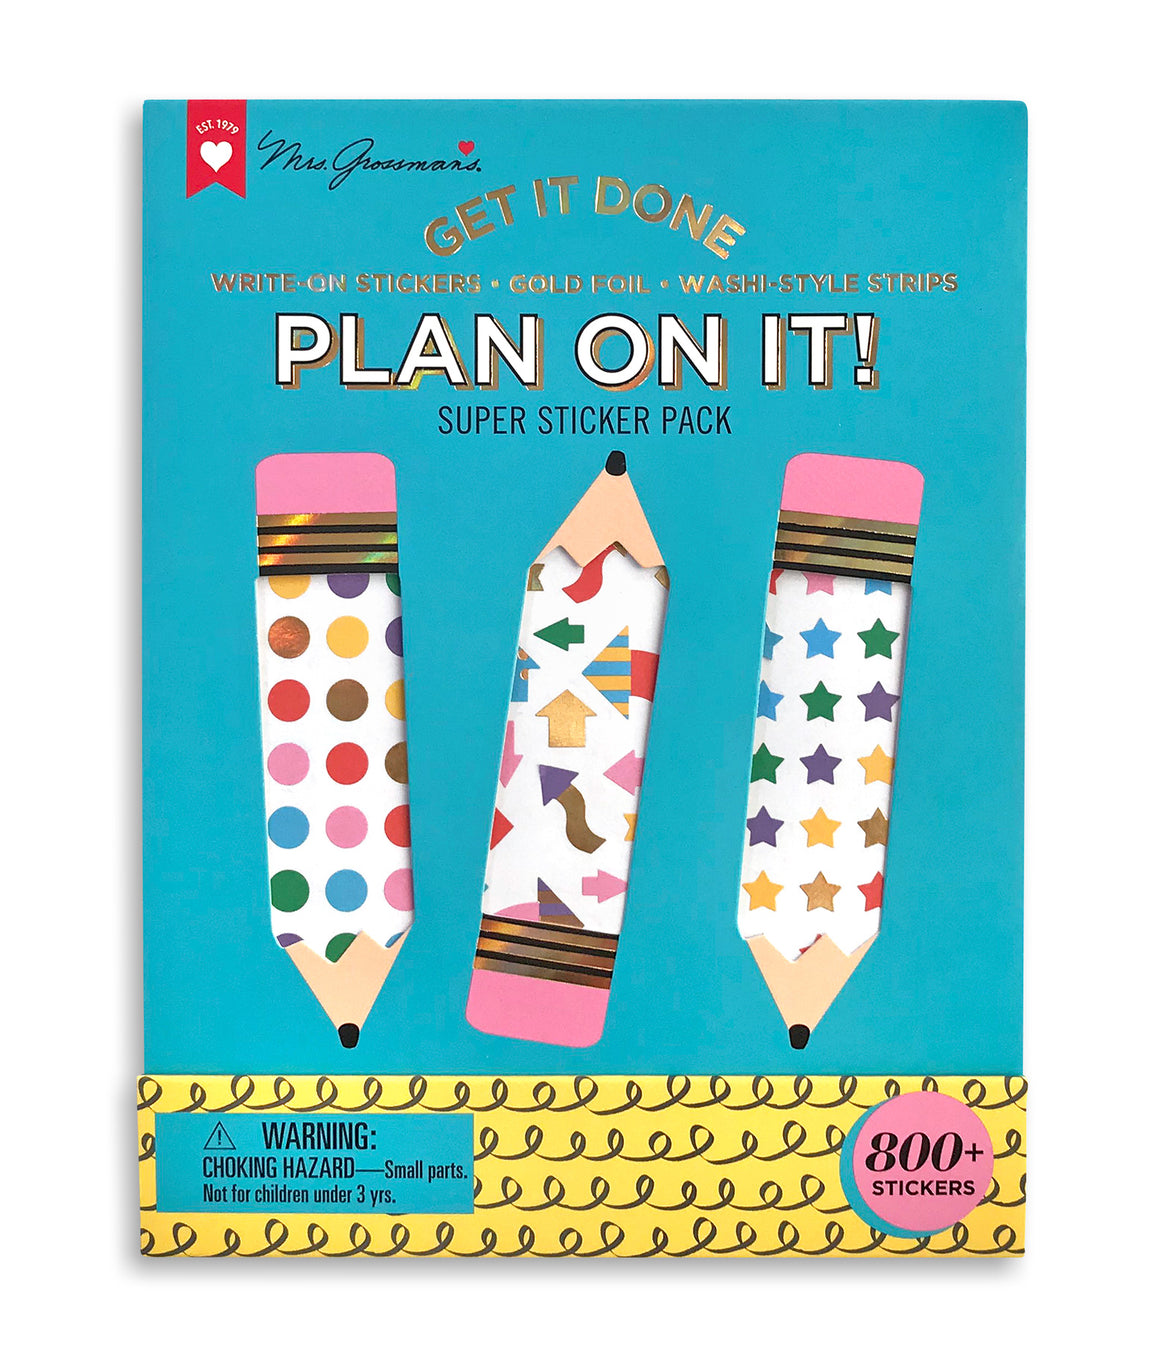 Plan On It Super Sticker Pack - Mrs. Grossman's